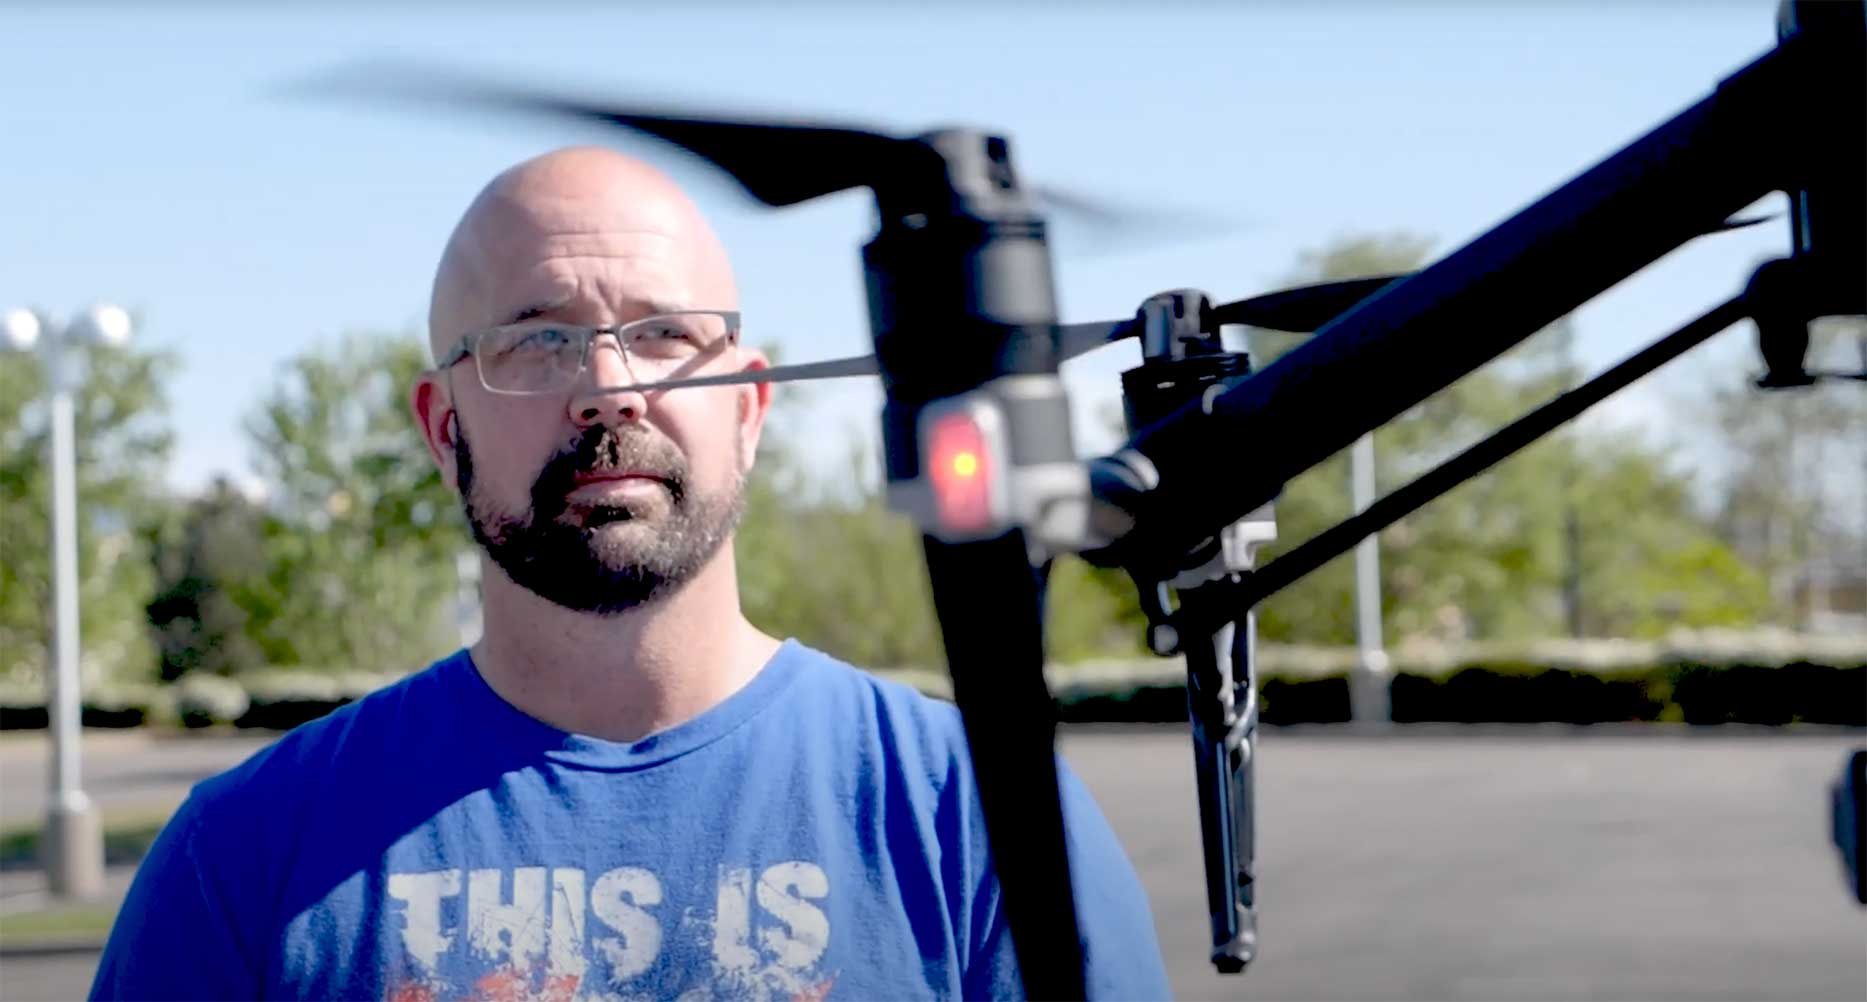 Watch Drone-tography: The Elevated Eye Video